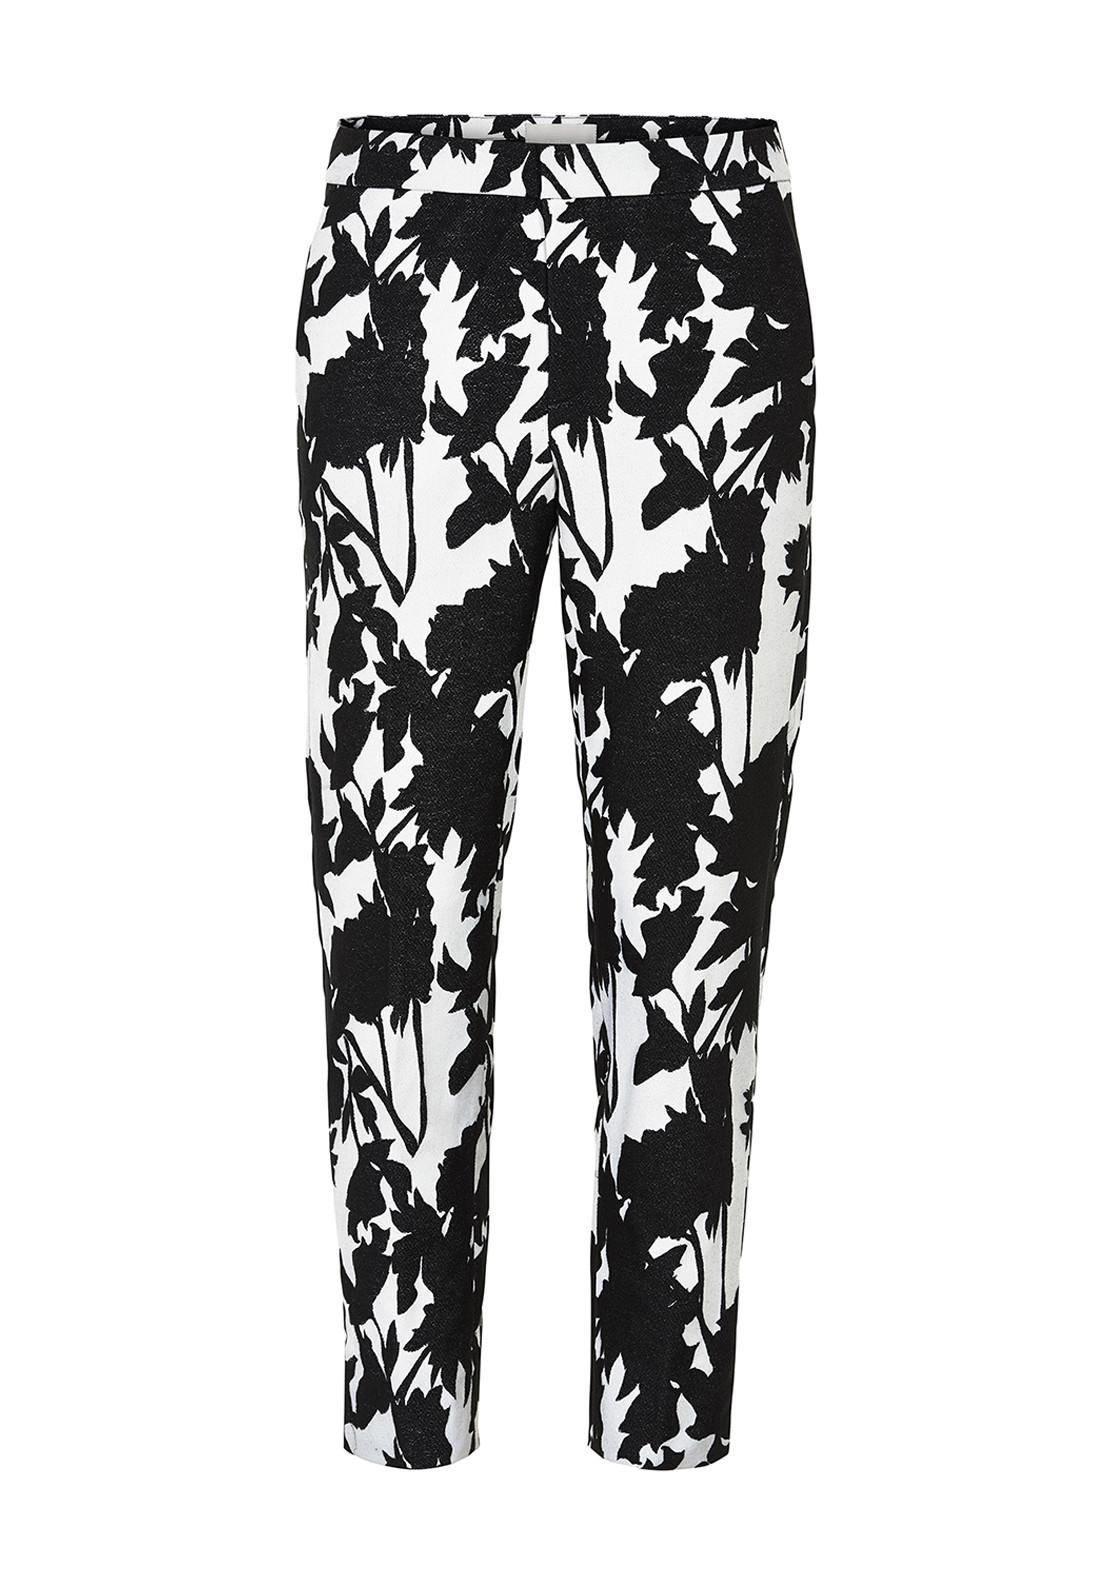 Inwear Ziva Printed 7/8 Length Trousers, Black & White